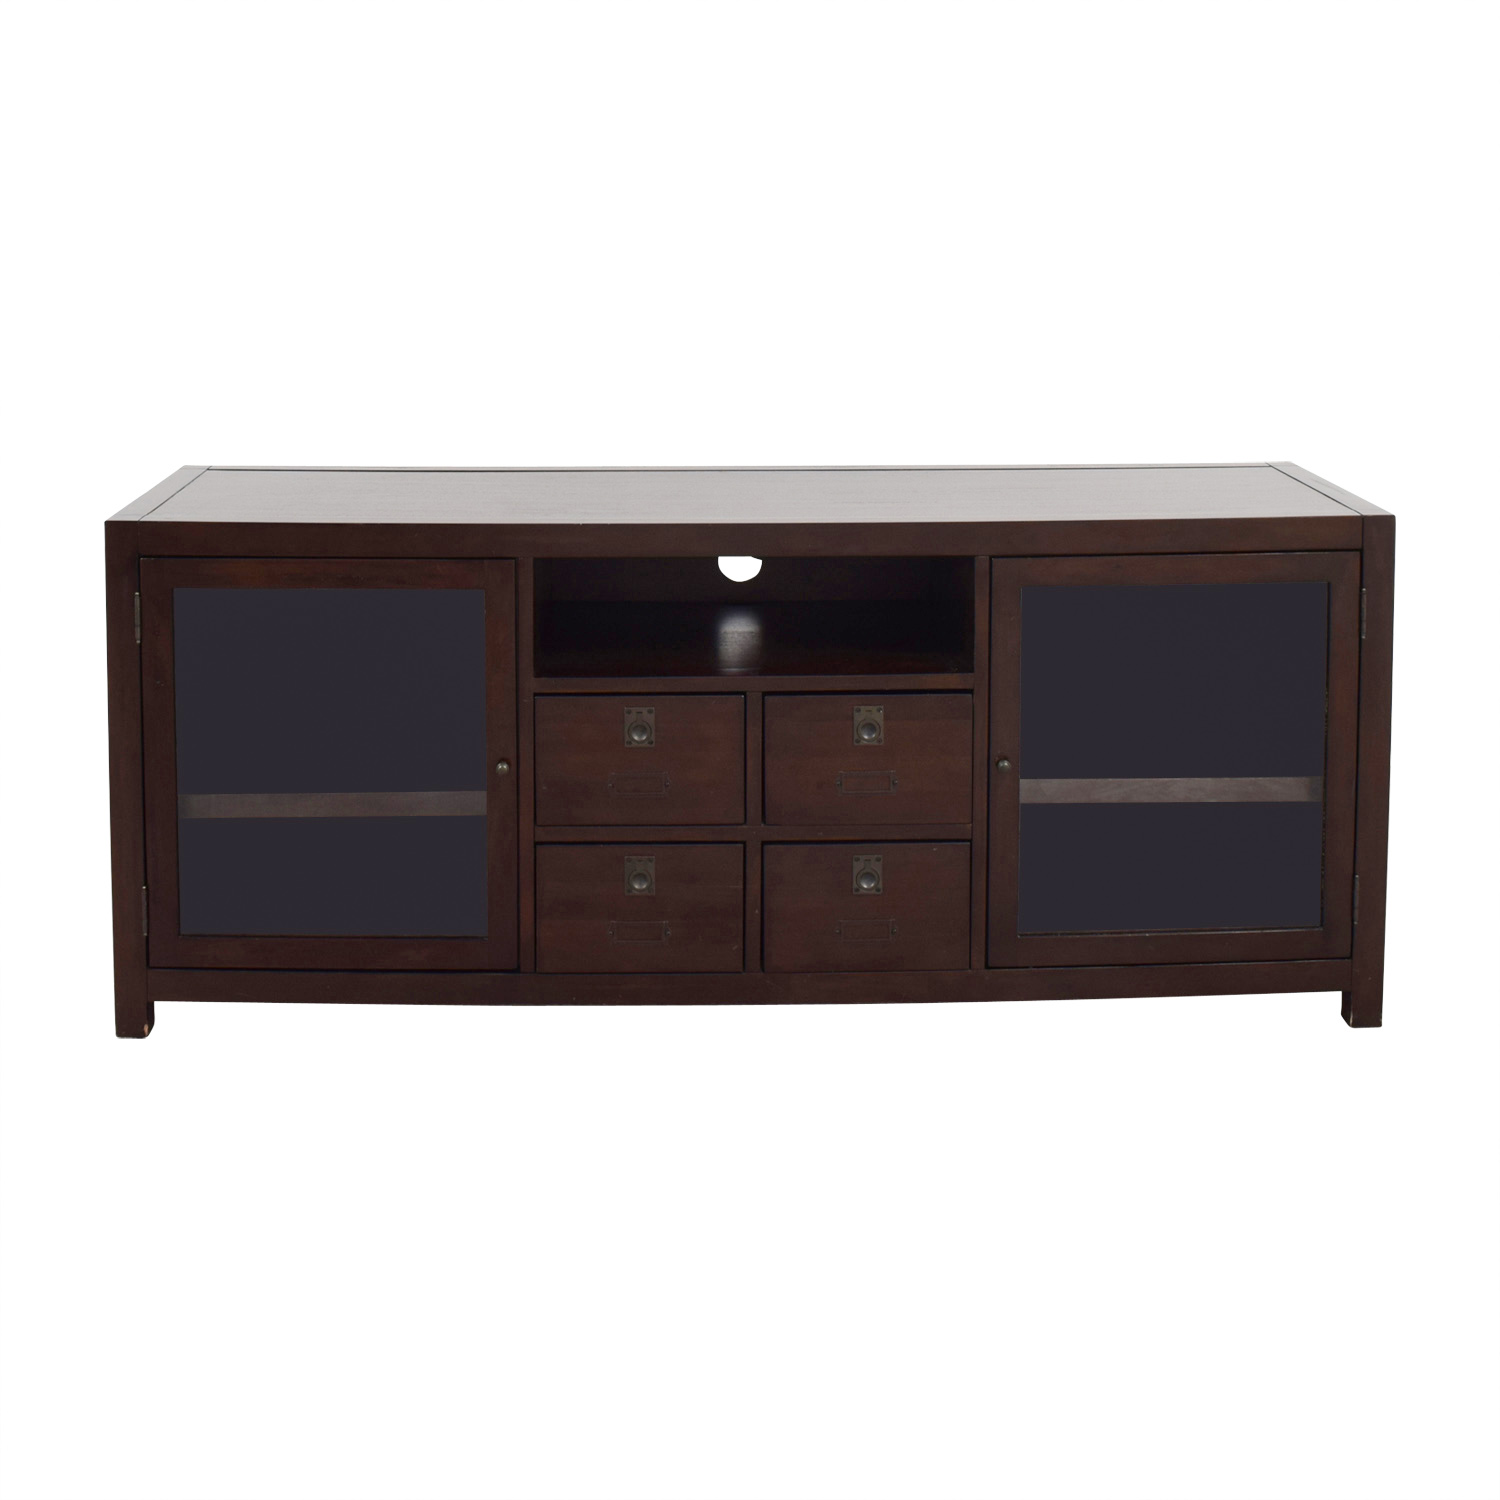 82 off raymour flanigan raymour flanigan tv console storage. Black Bedroom Furniture Sets. Home Design Ideas